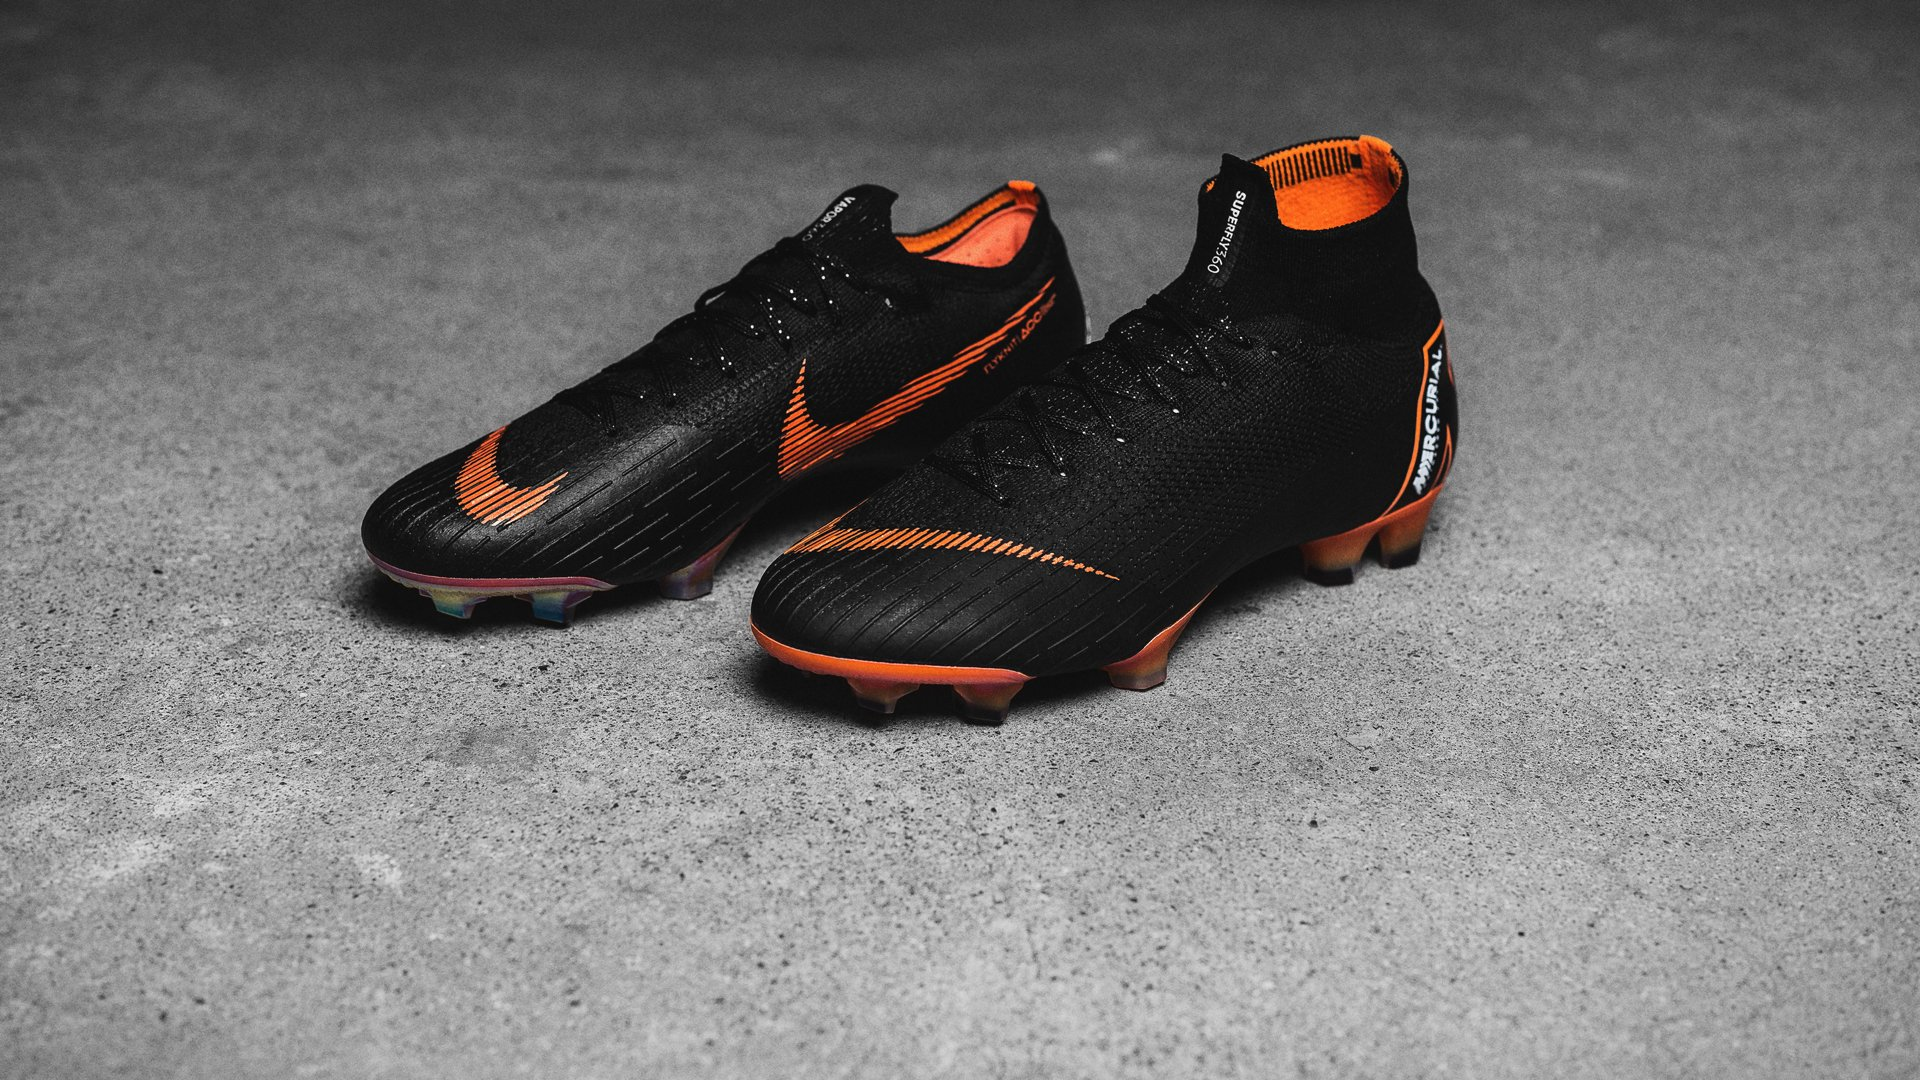 brand new 7e0d4 d6aa8 New Mercurial 360 colourway